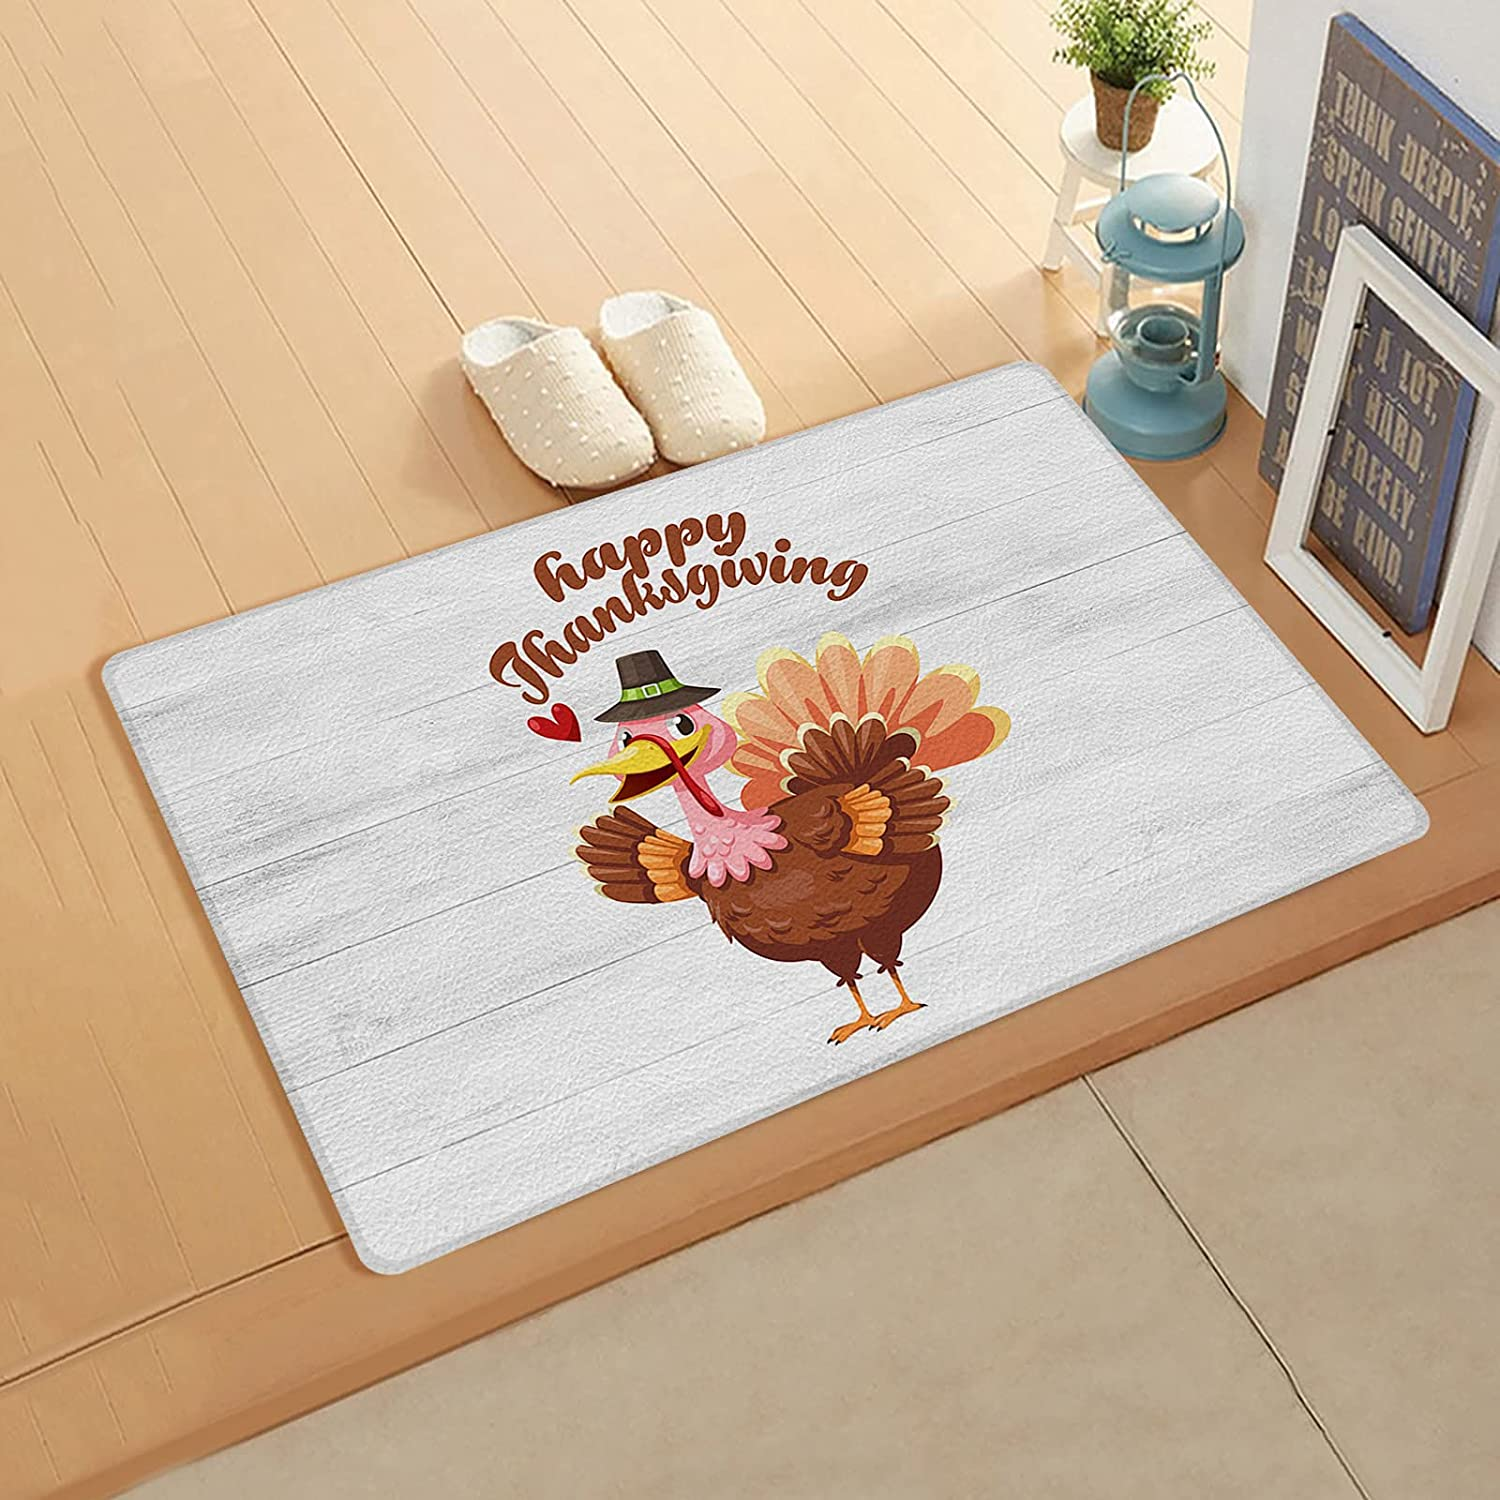 InvisibleWings Kitchen Mat Surprise price Cushioned Retr Comfort Fall Floor Popular brand